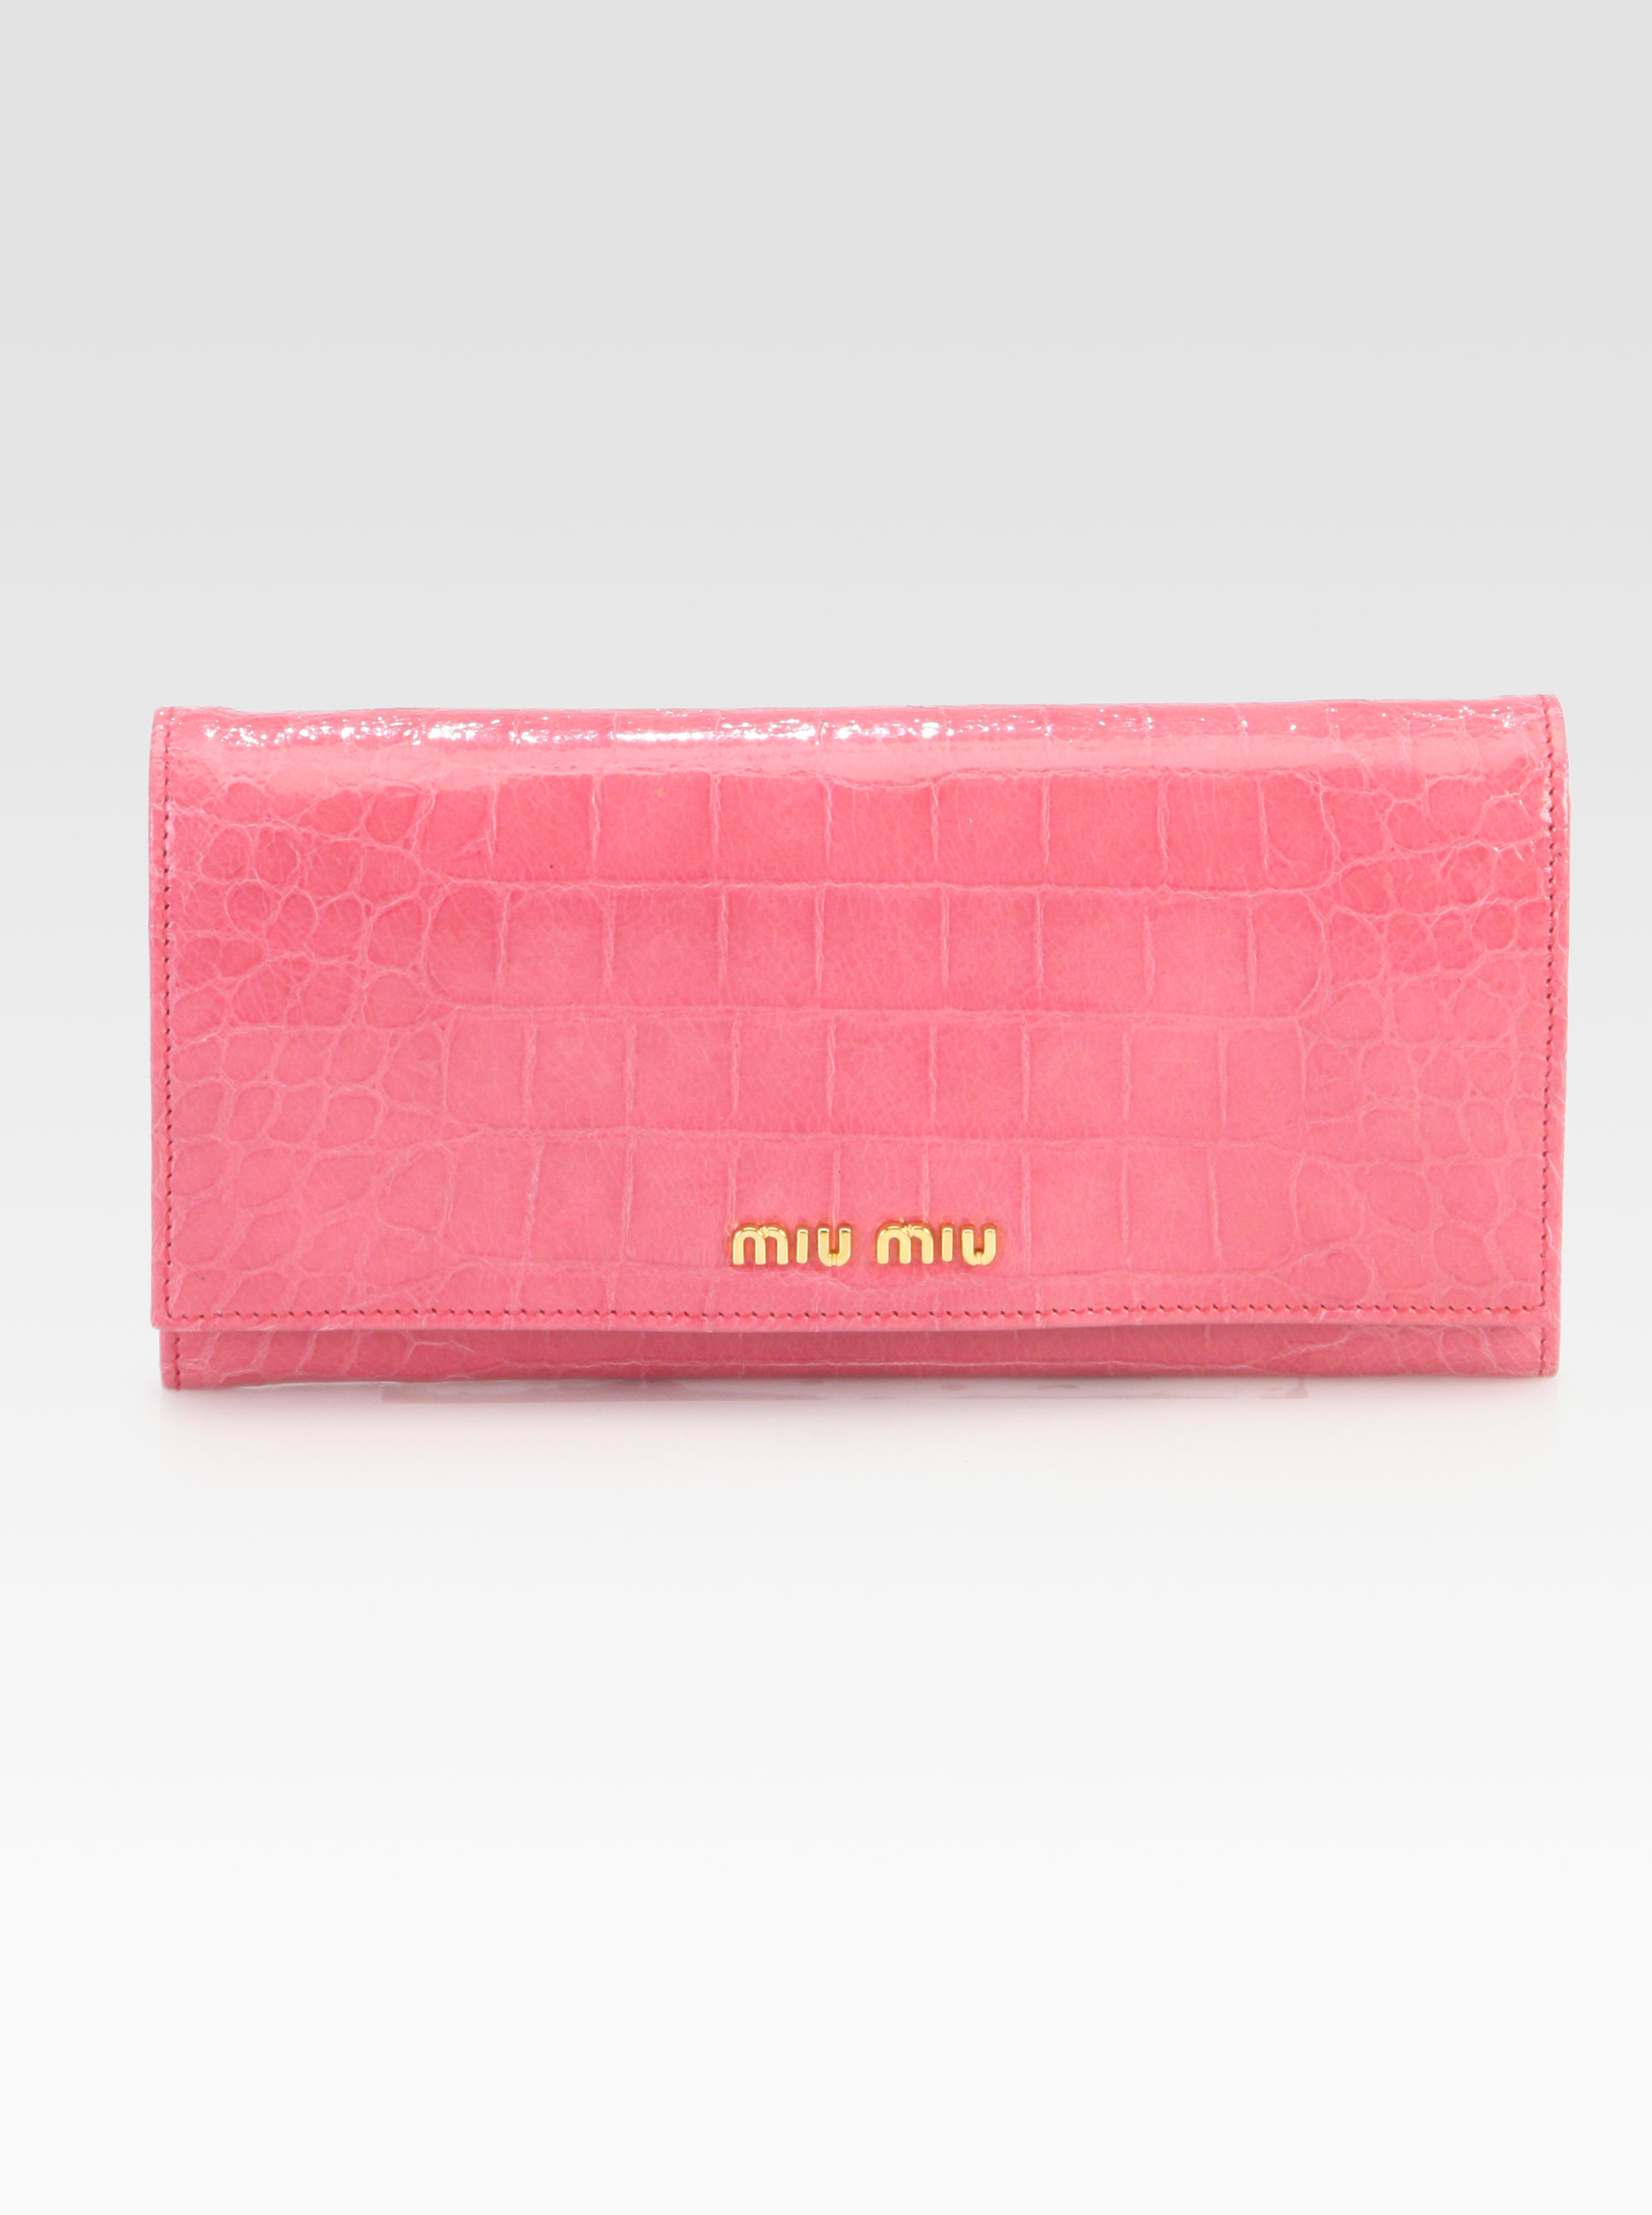 53e634e02ad6 Lyst - Miu Miu Crocodile Embossed Leather Continental Wallet in Pink